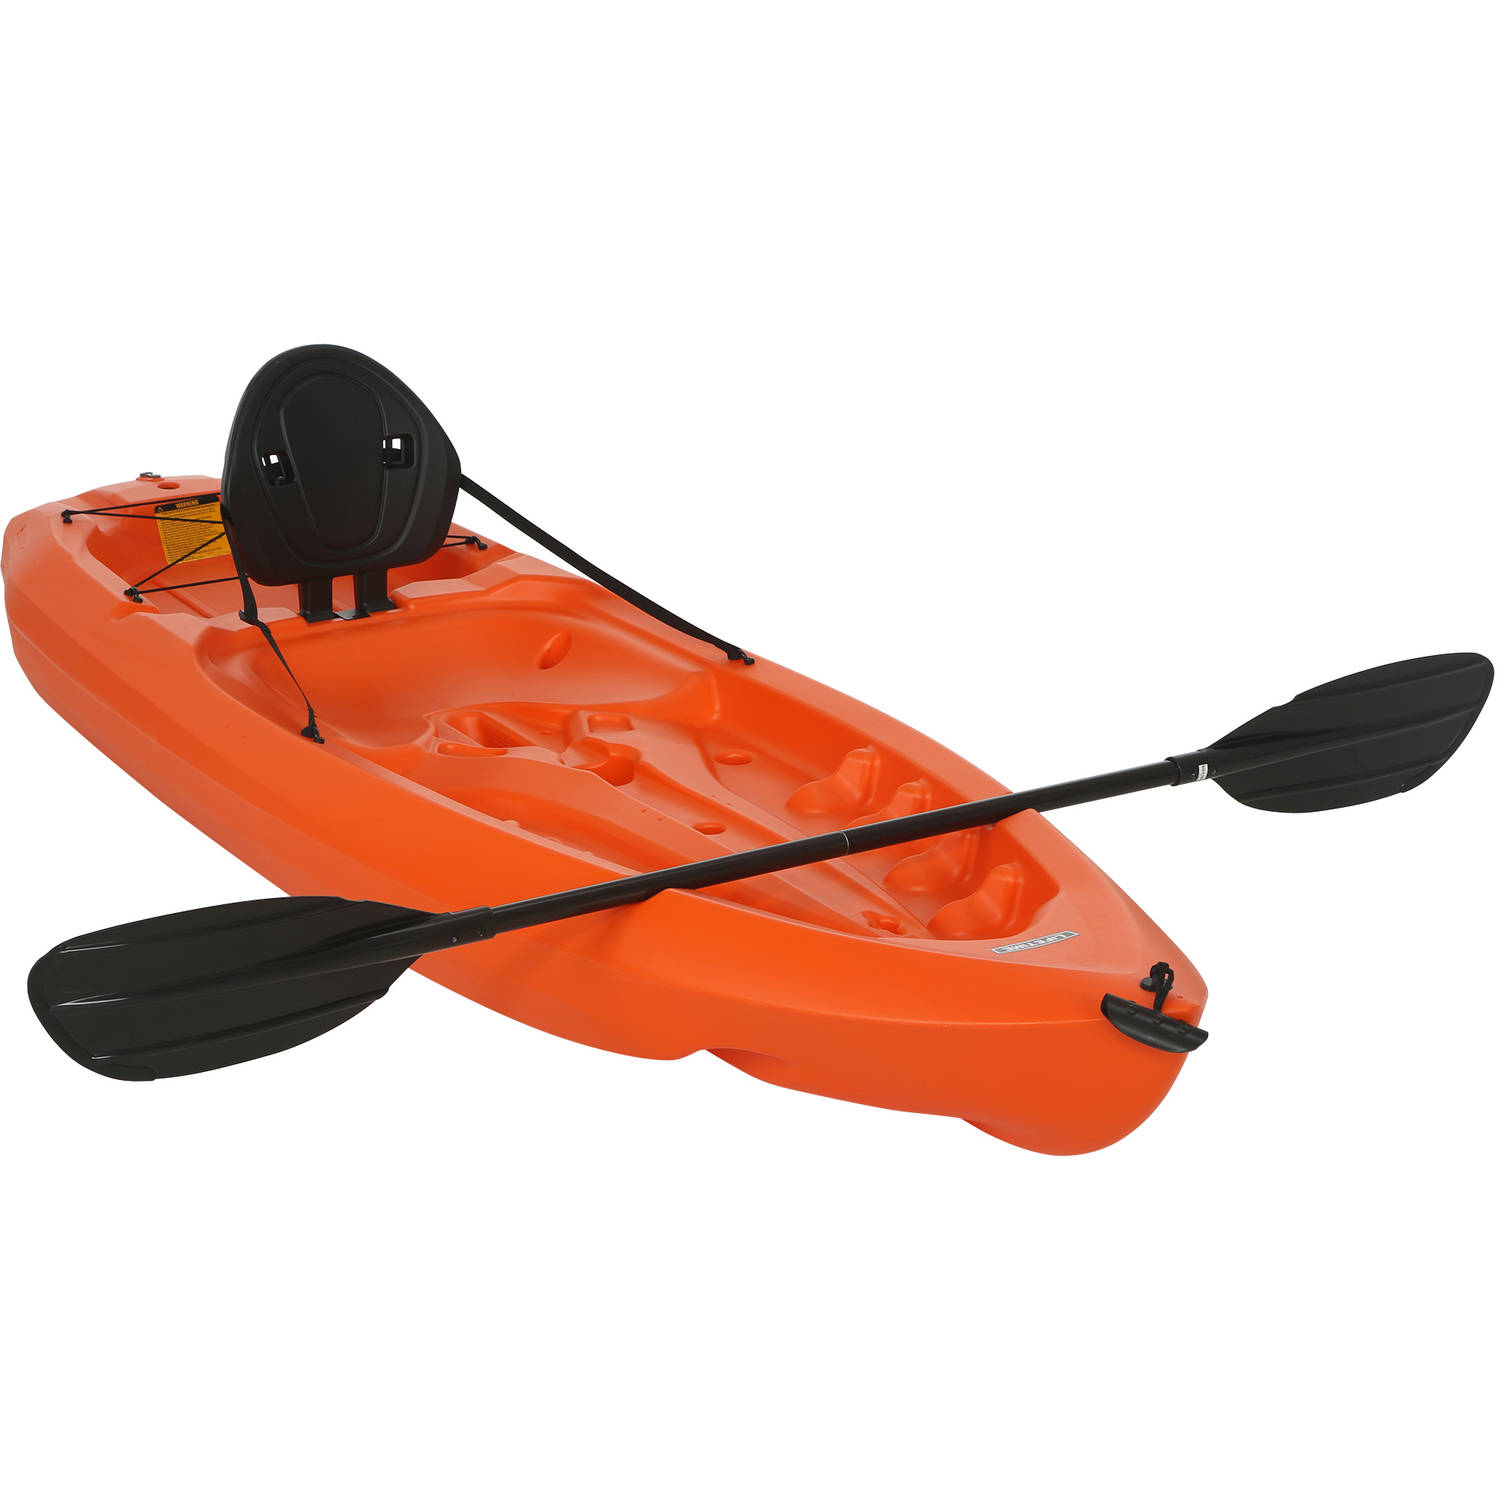 Lifetime 8' Daylite Kayak, Orange with Bonus Paddle